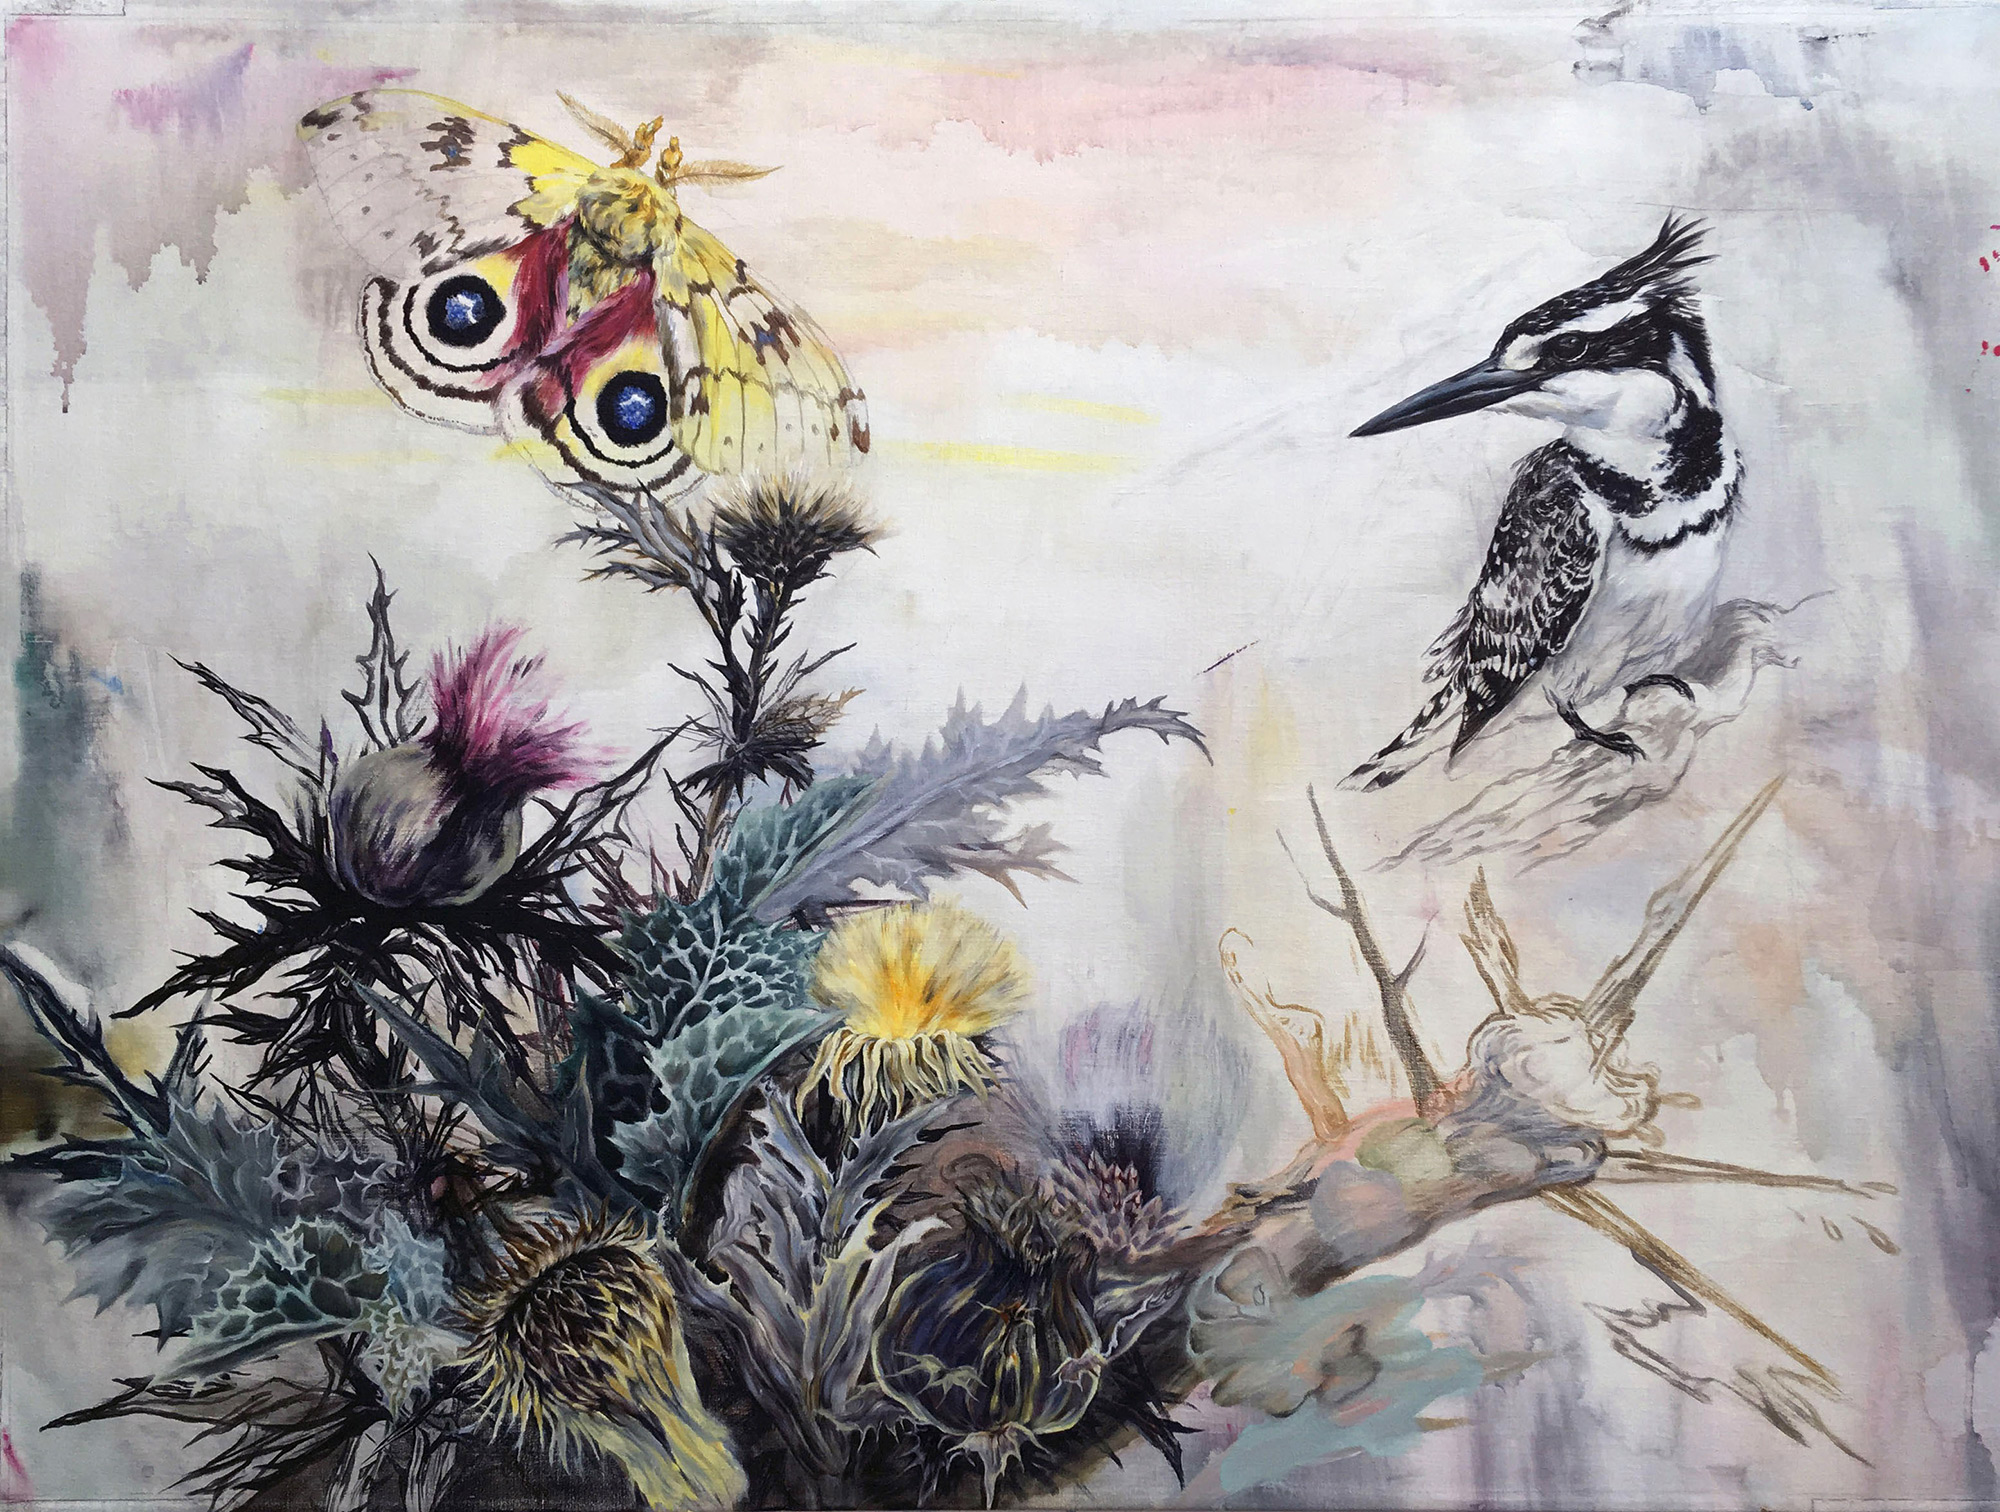 paintings, aesthetic, animal, colorful, landscape, animals, botany, insects, movement, wildlife, green, grey, yellow, acrylic, flax-canvas, abstract-forms, Buy original high quality art. Paintings, drawings, limited edition prints & posters by talented artists.